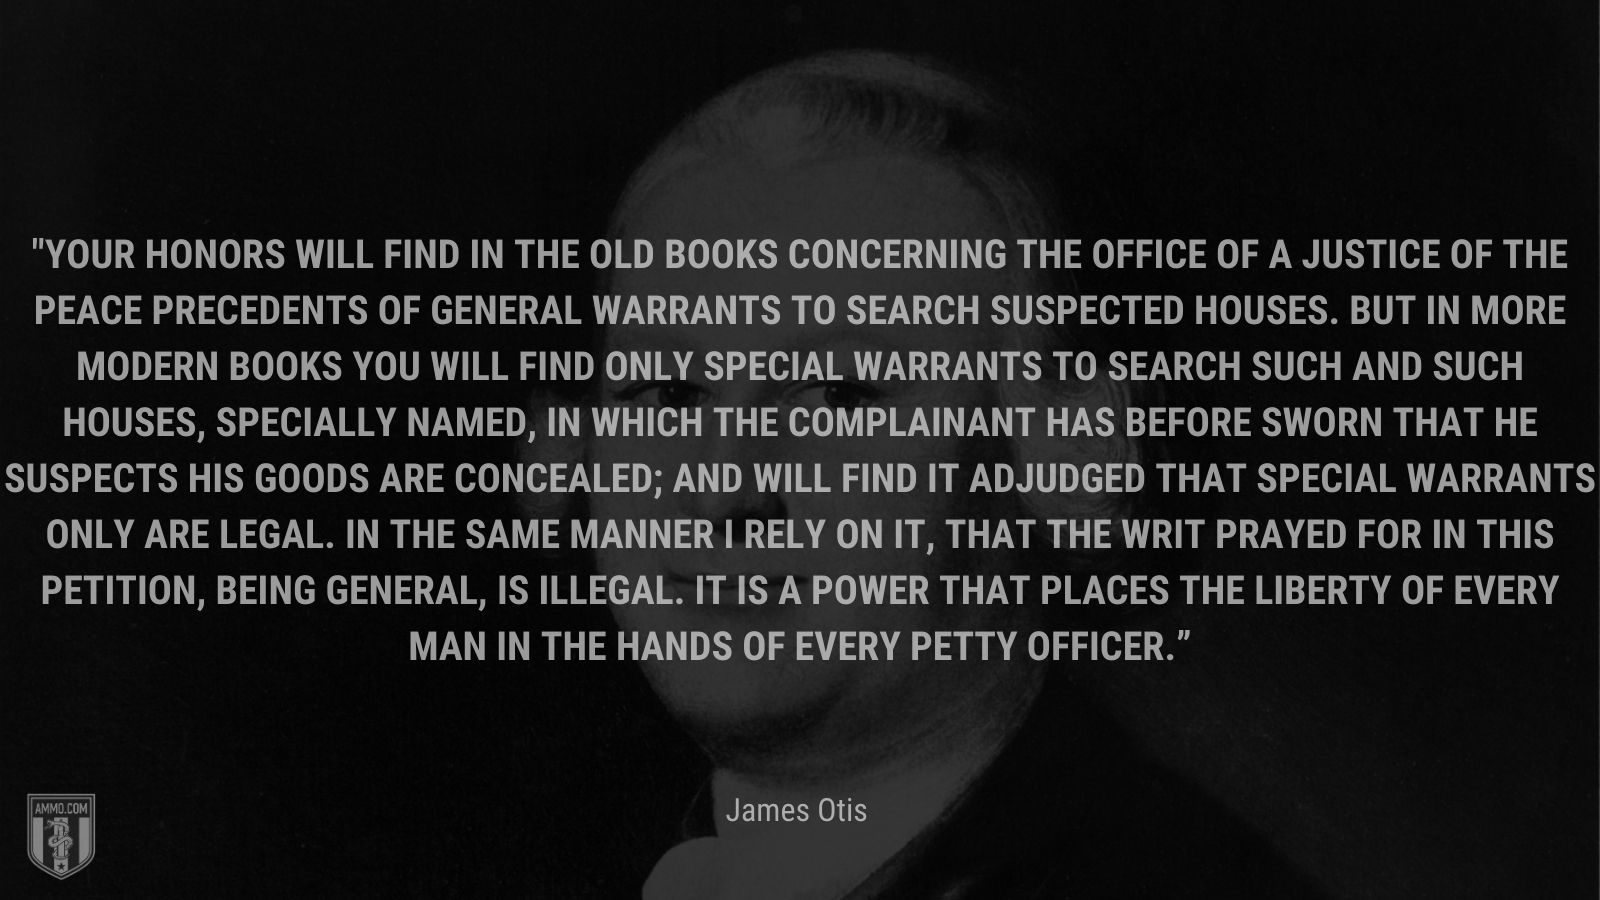 """""""Your Honors will find in the old books concerning the office of a justice of the peace precedents of general warrants to search suspected houses. But in more modern books you will find only special warrants to search such and such houses, specially named, in which the complainant has before sworn that he suspects his goods are concealed; and will find it adjudged that special warrants only are legal. In the same manner I rely on it, that the writ prayed for in this petition, being general, is illegal. It is a power that places the liberty of every man in the hands of every petty officer."""" - James Otis"""